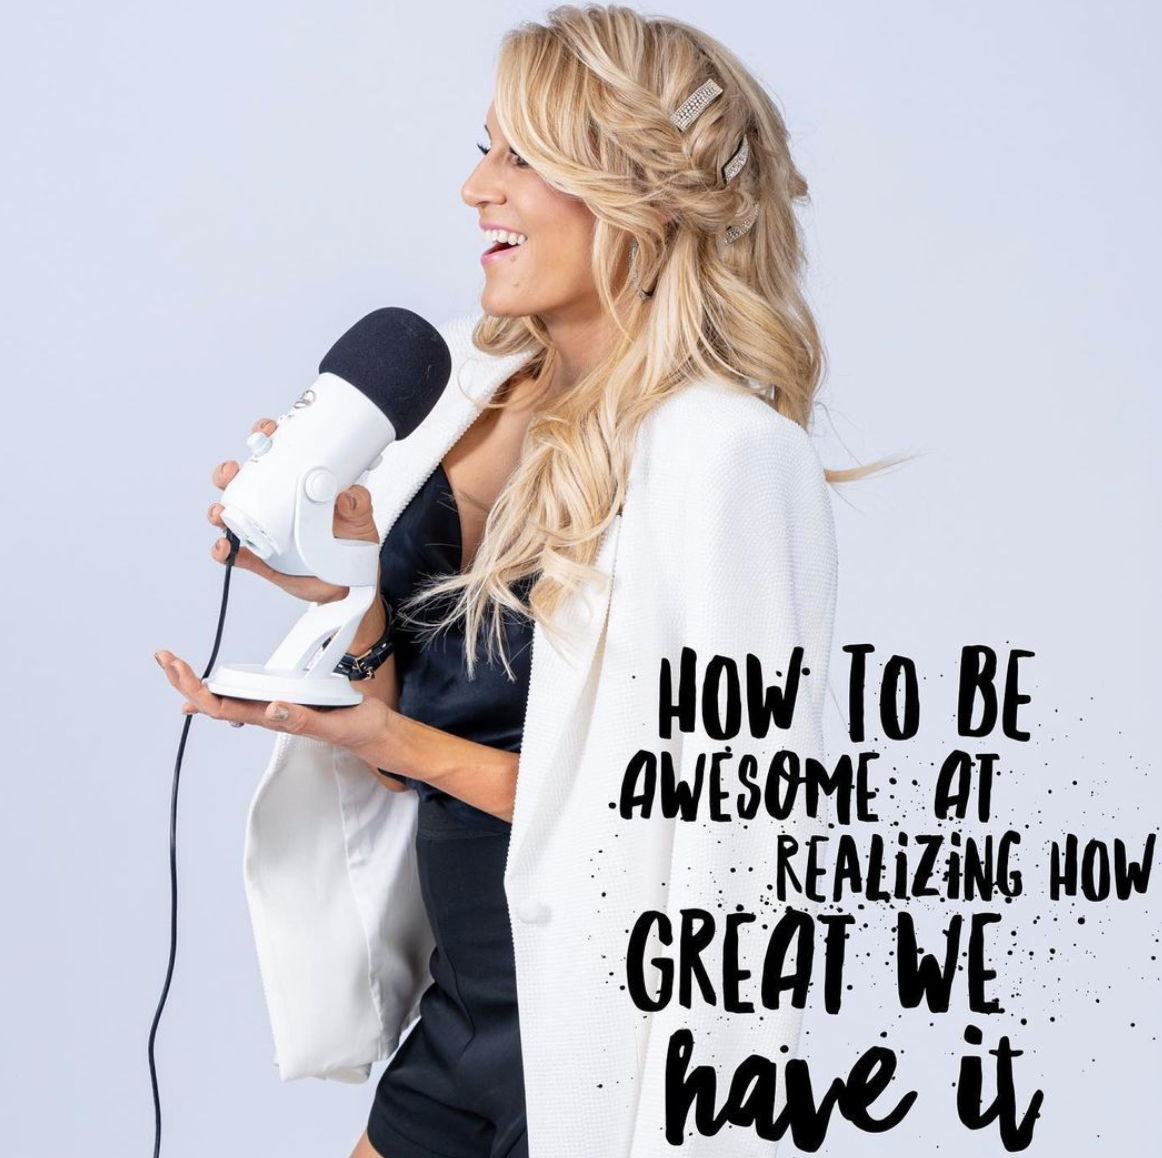 How To Be Awesome At Realizing How Great We Have It